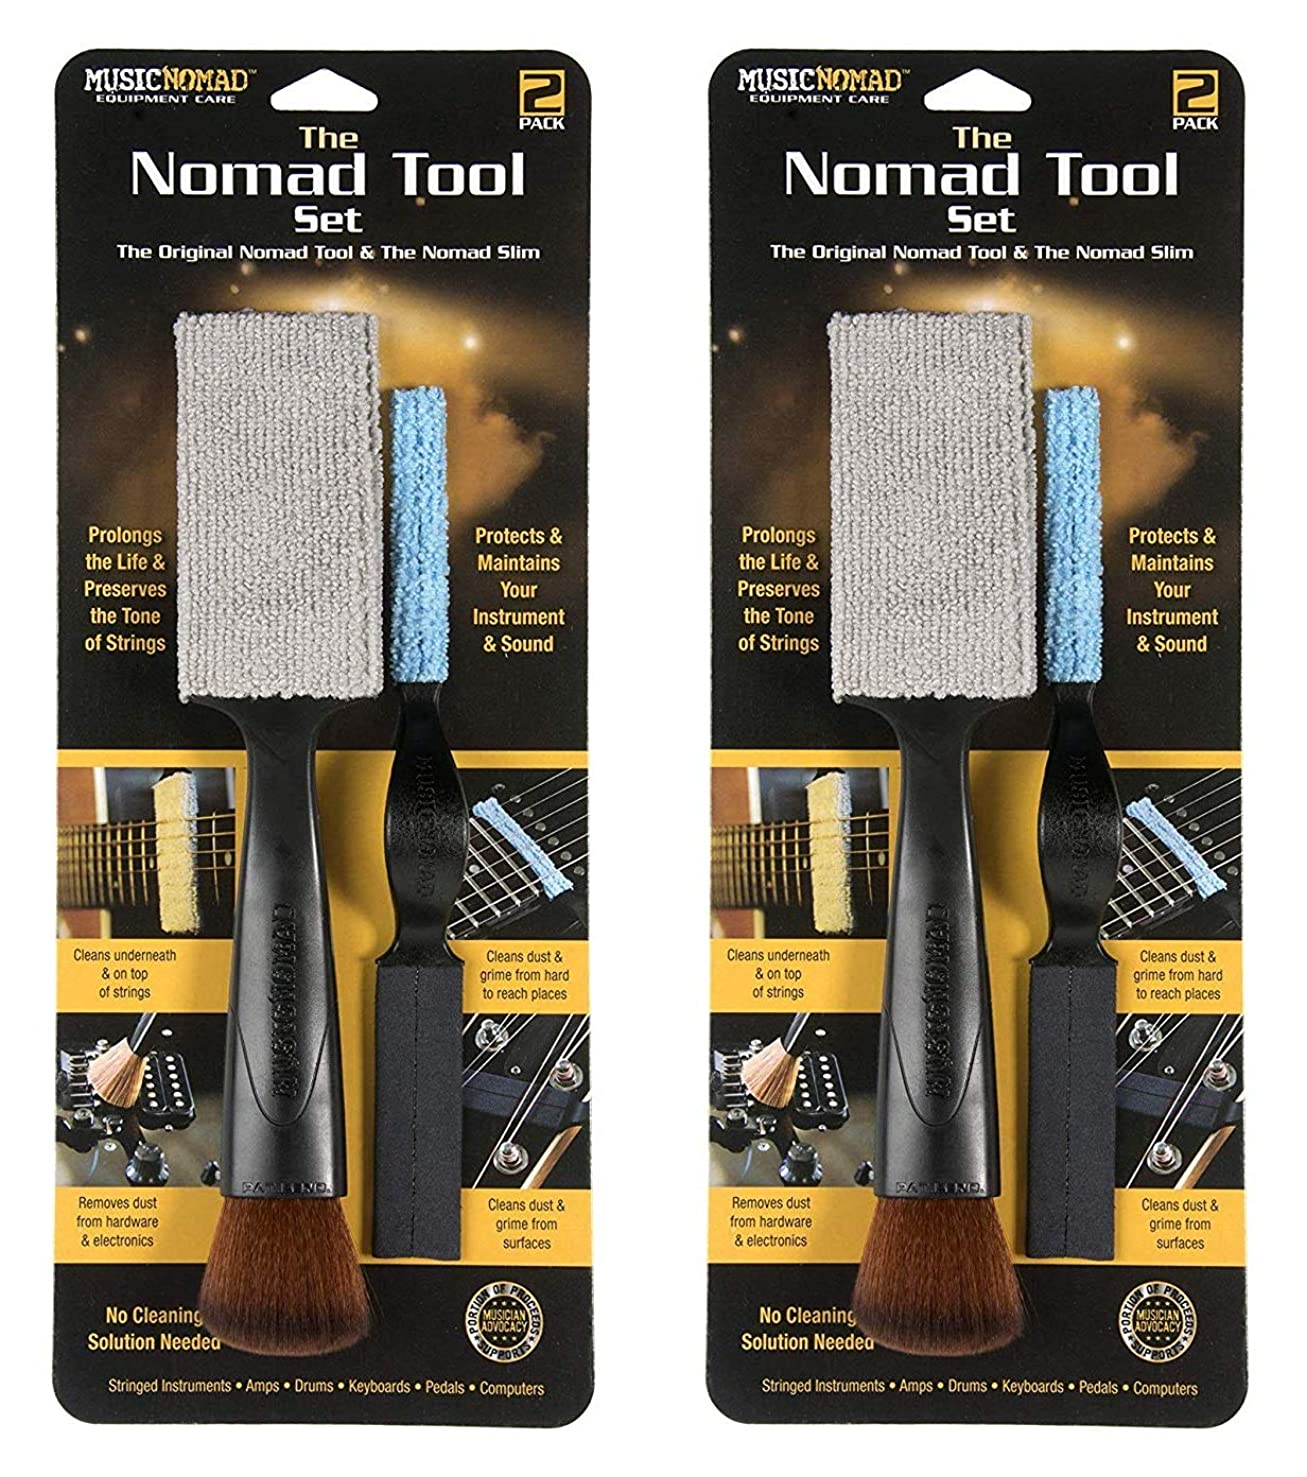 The Nomad Tool Set - The Original Nomad Tool & The Nomad Slim (Тwо Расk)